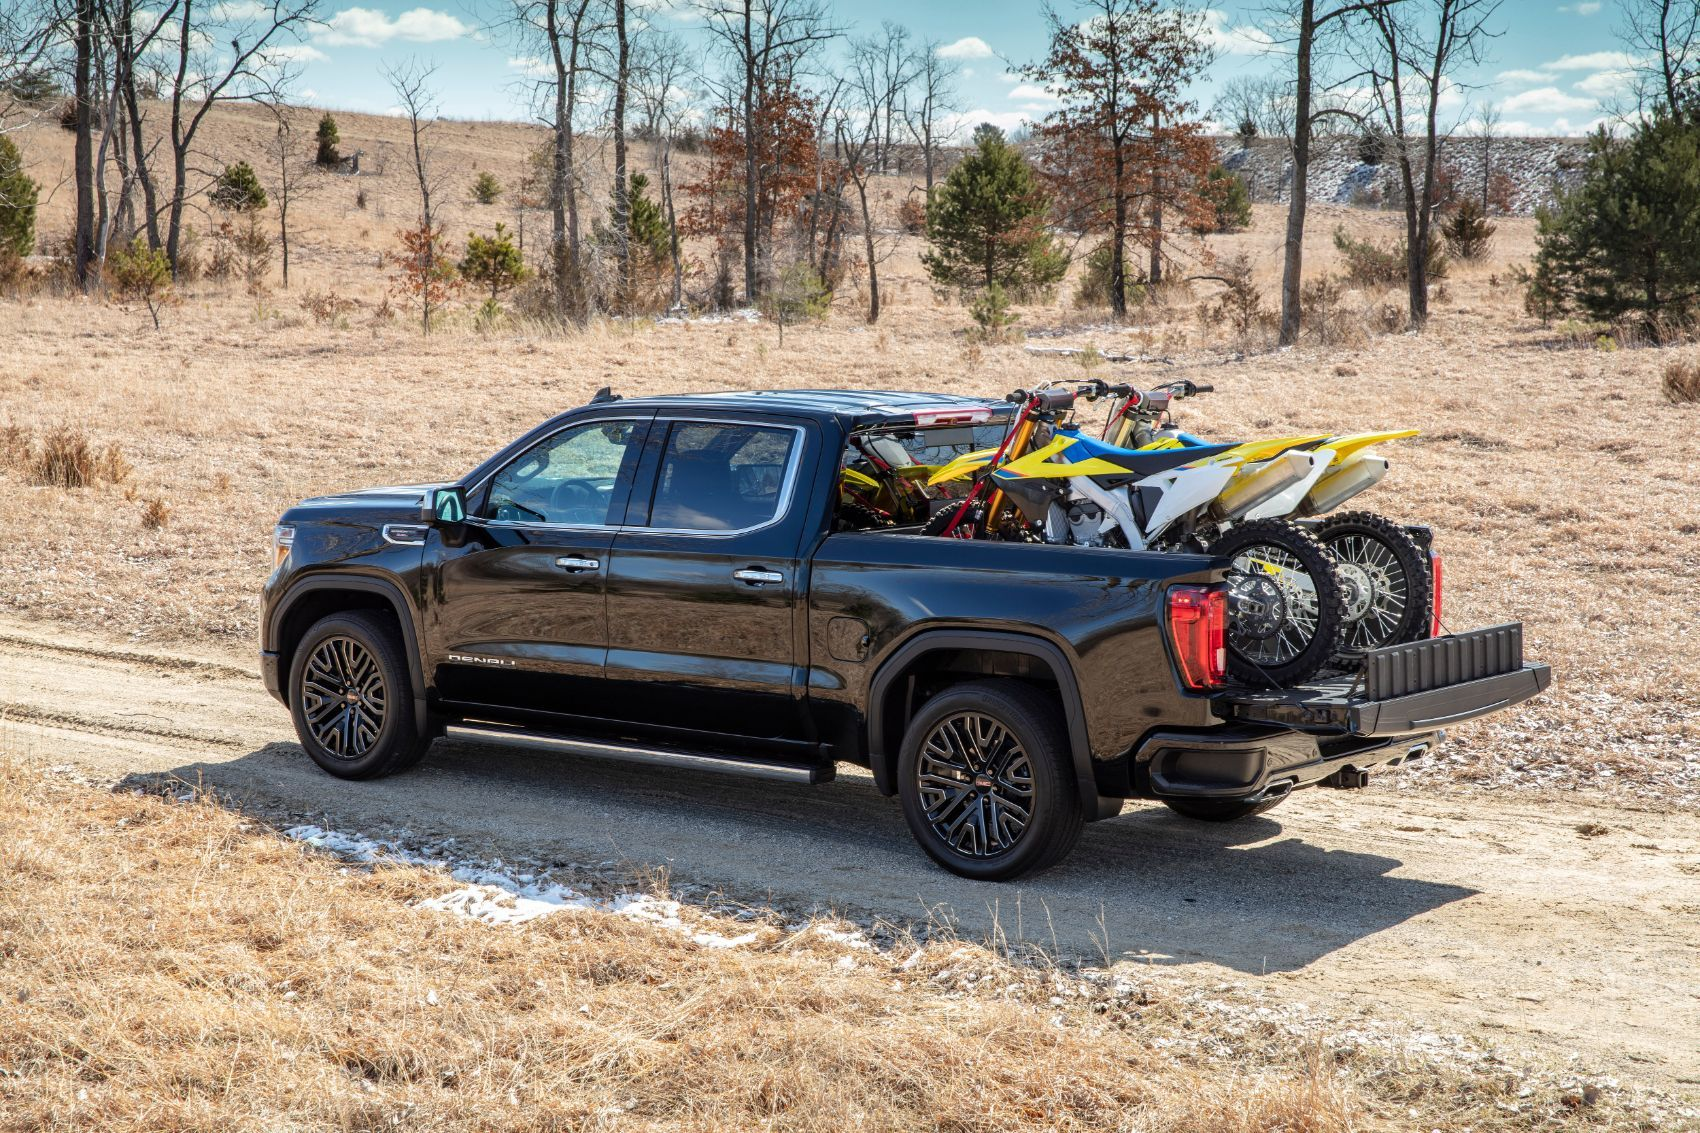 GMC Sierra CarbonPro Edition Vs. Bricks, Water Drums & Snowmobiles